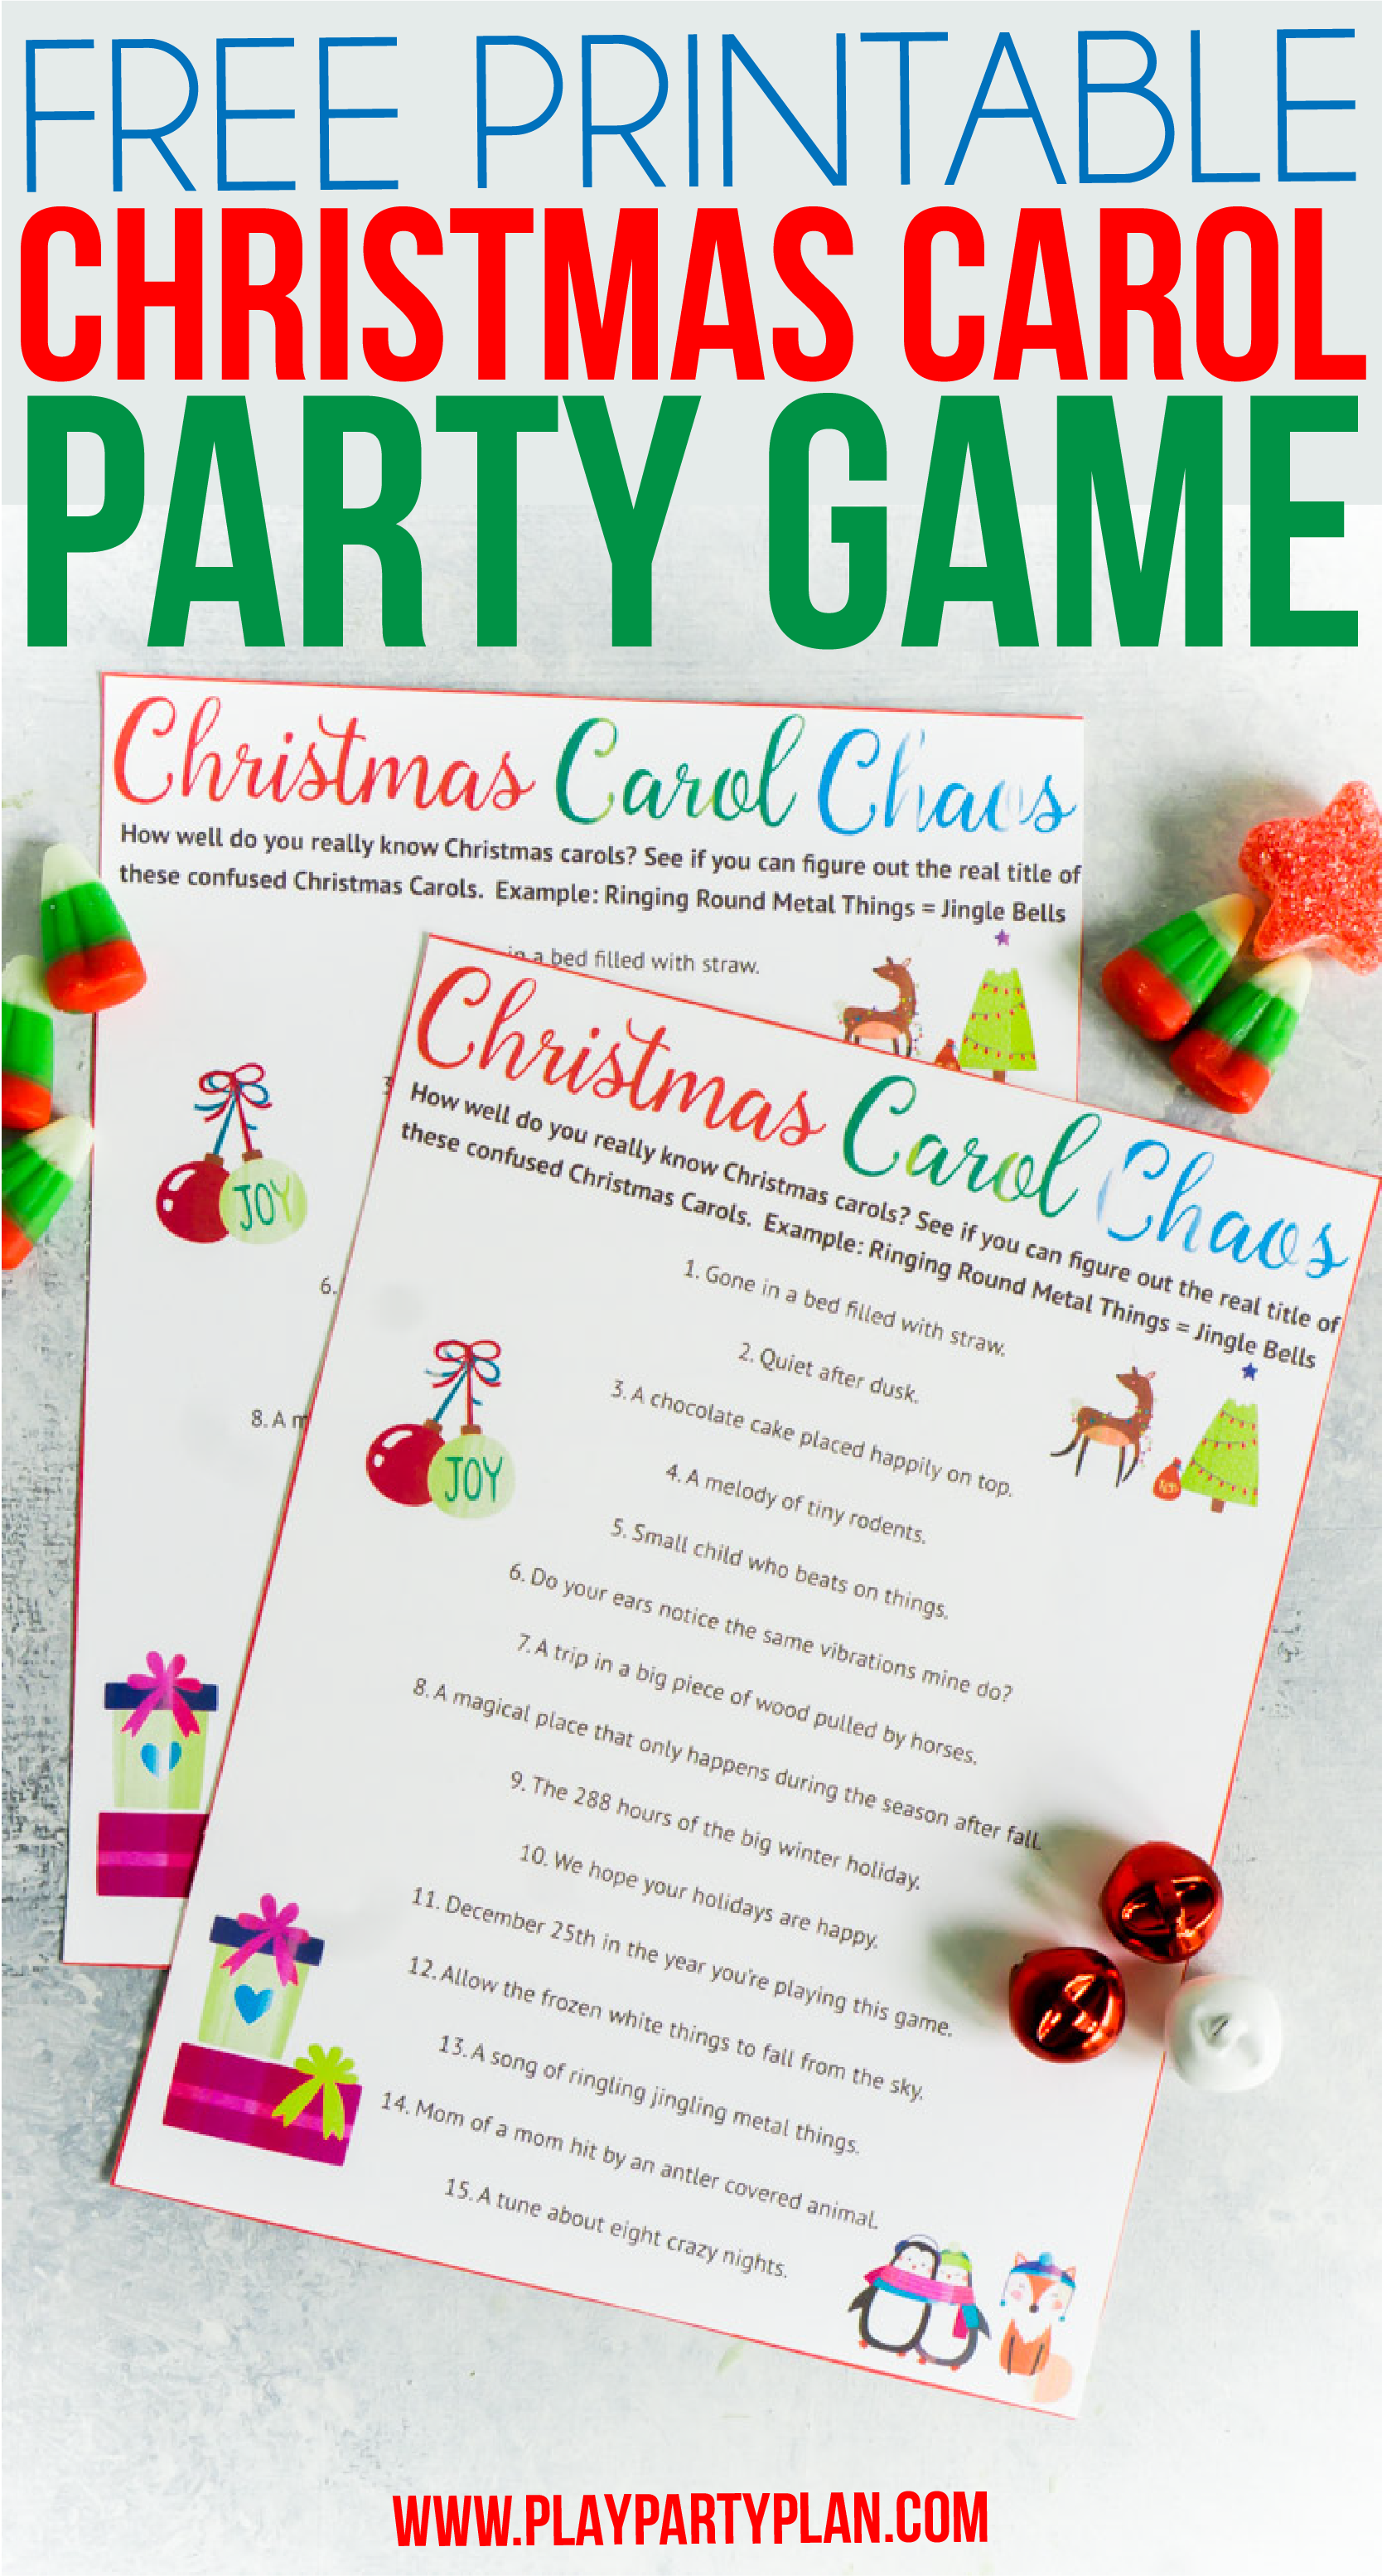 A fun printable Christmas party game where you have to figure out mixed up Christmas songs! One of the best Christmas party games ever!